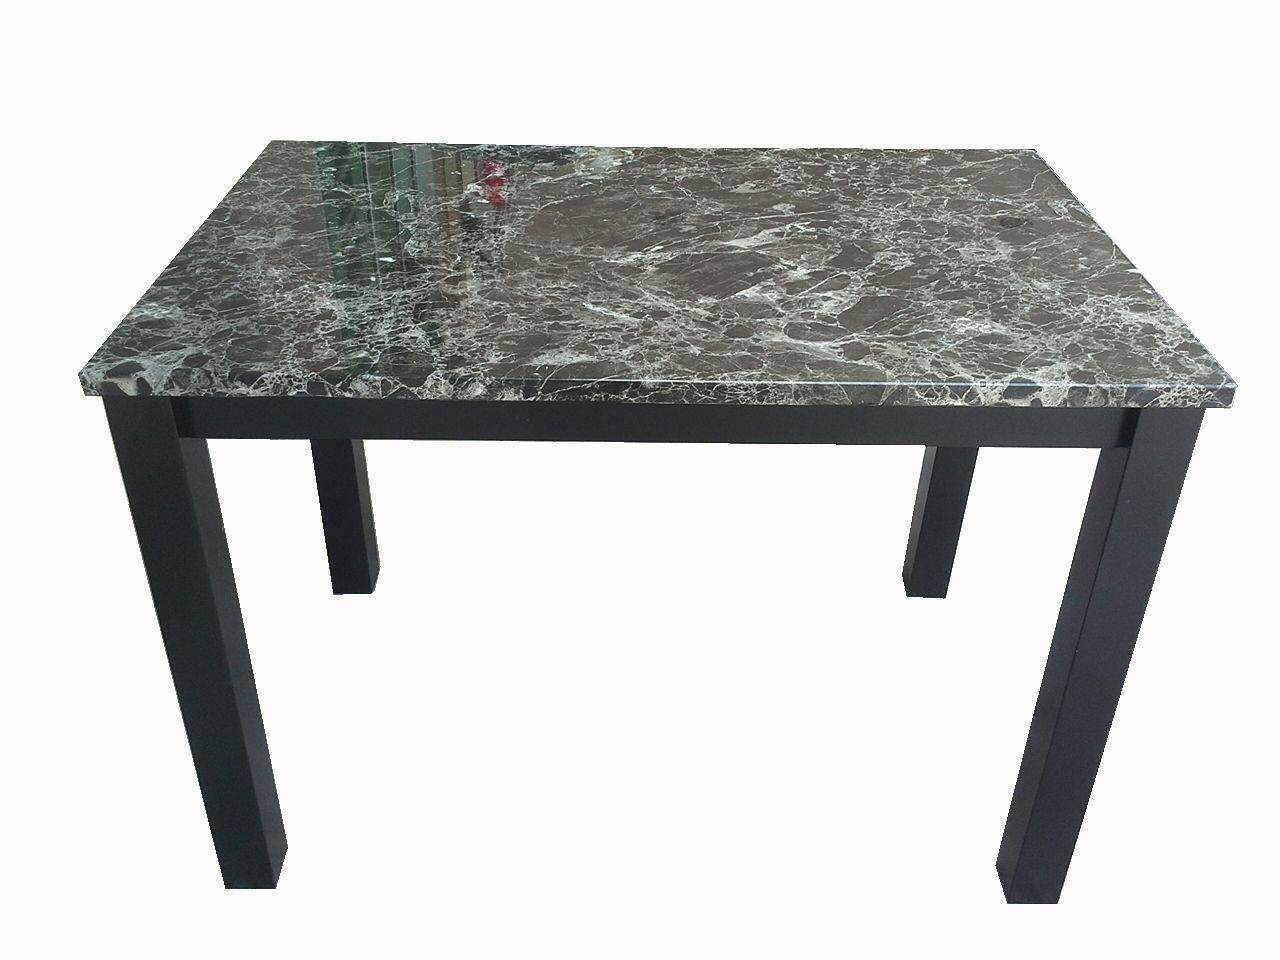 PJY Faux Marble Dining Table Black Lazada Malaysia : fa8b51c987035df5d6b8b6e914634d0e from www.lazada.com.my size 1280 x 960 jpeg 110kB